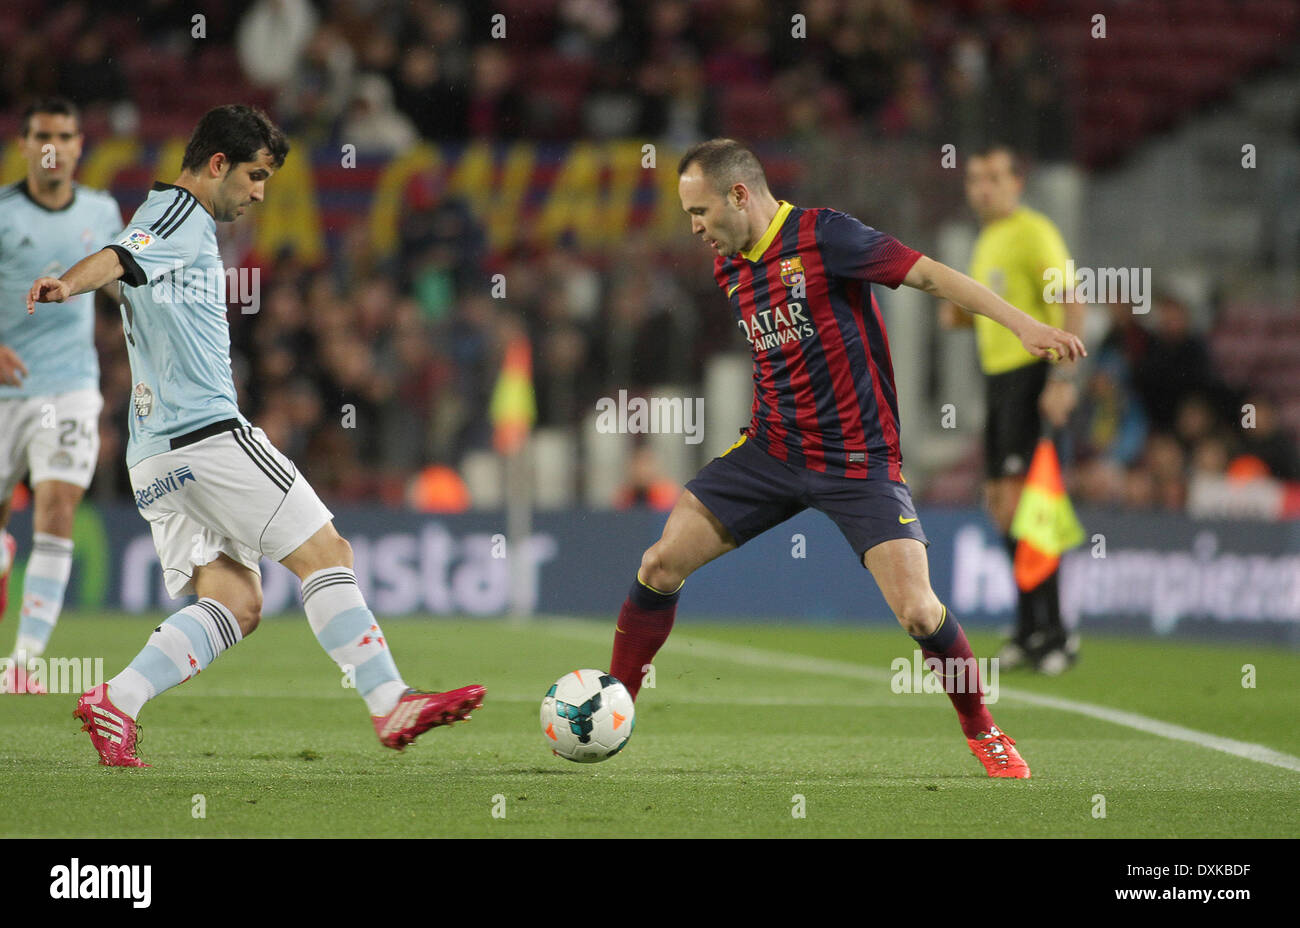 26.03.2014  Barcelona, Spain.  Iniesta  in action during the Liga BBVA game between Barcelona and Celta Vigo from Camp Nou - Stock Image